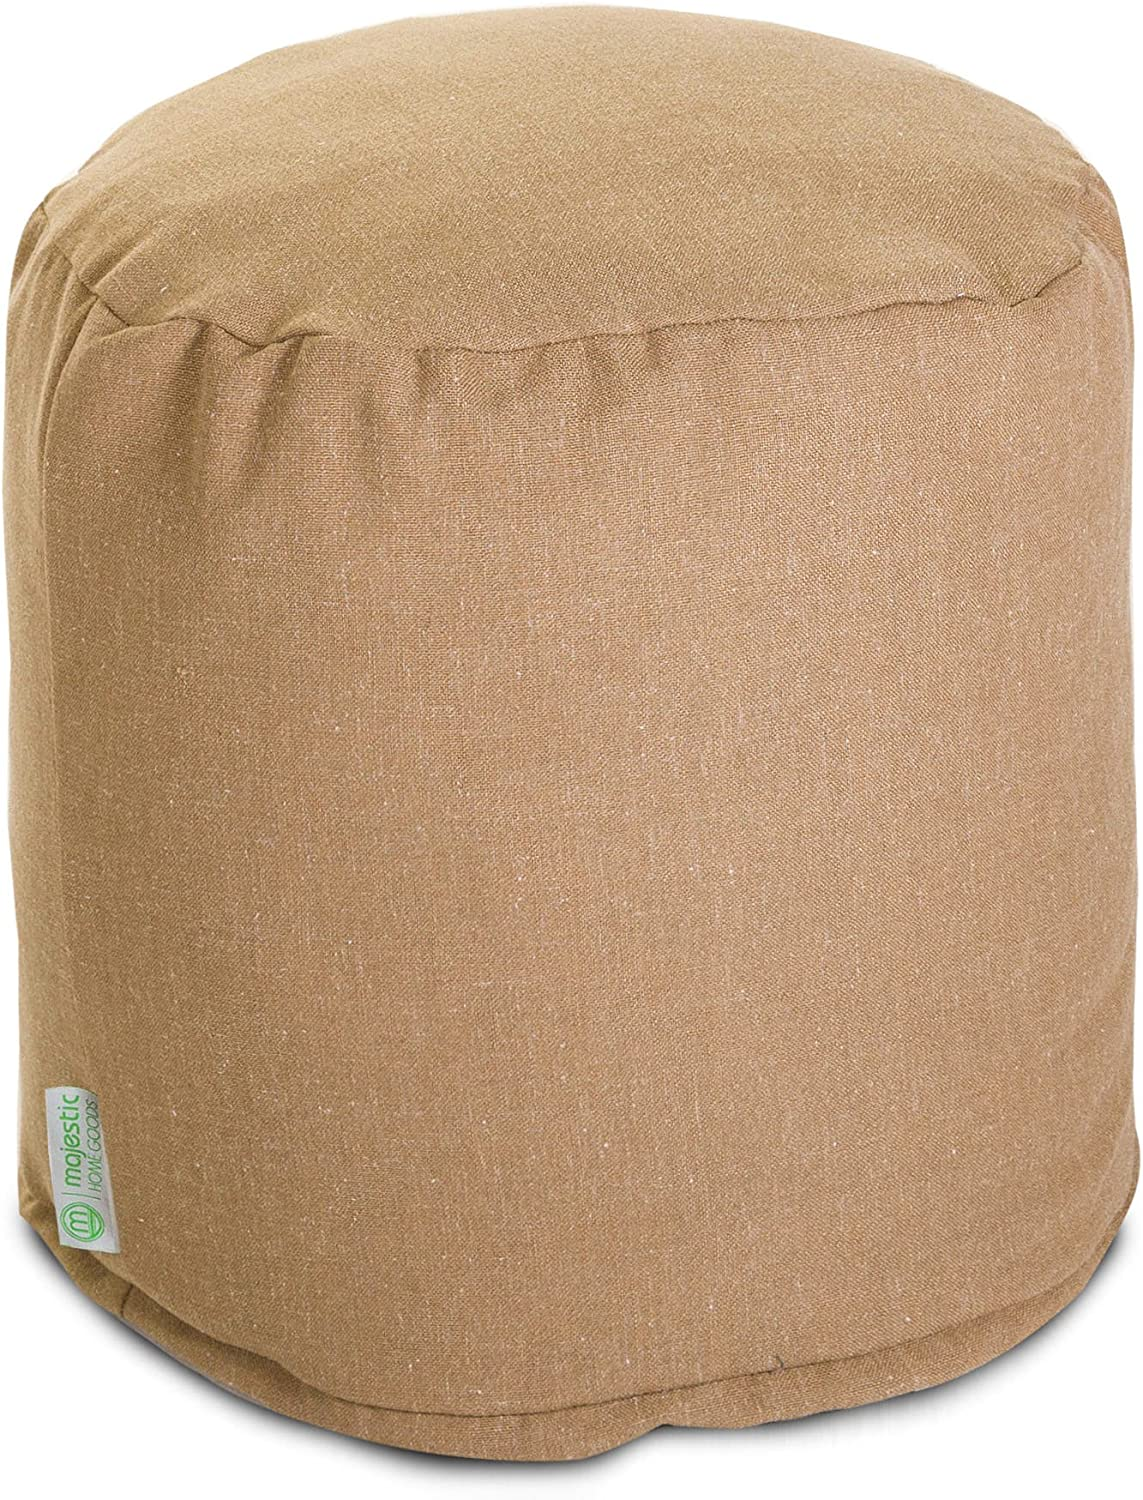 Majestic Home Goods Graham Wales Small Pouf